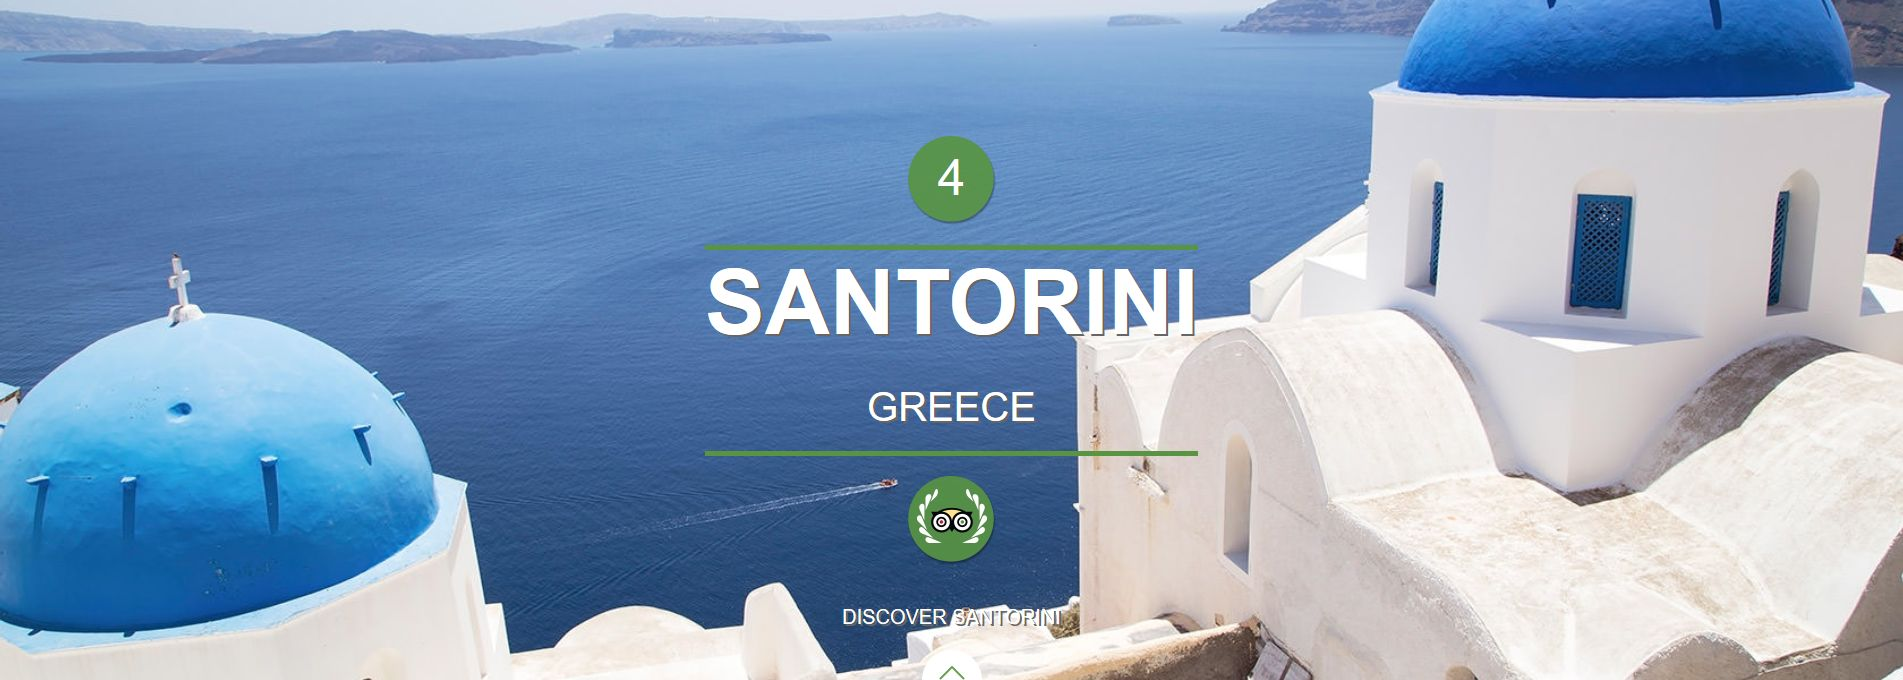 Santorini nominated as #4 World Island and #1 Europe Island @ 2015 TripAdvisor Traveler's Choice